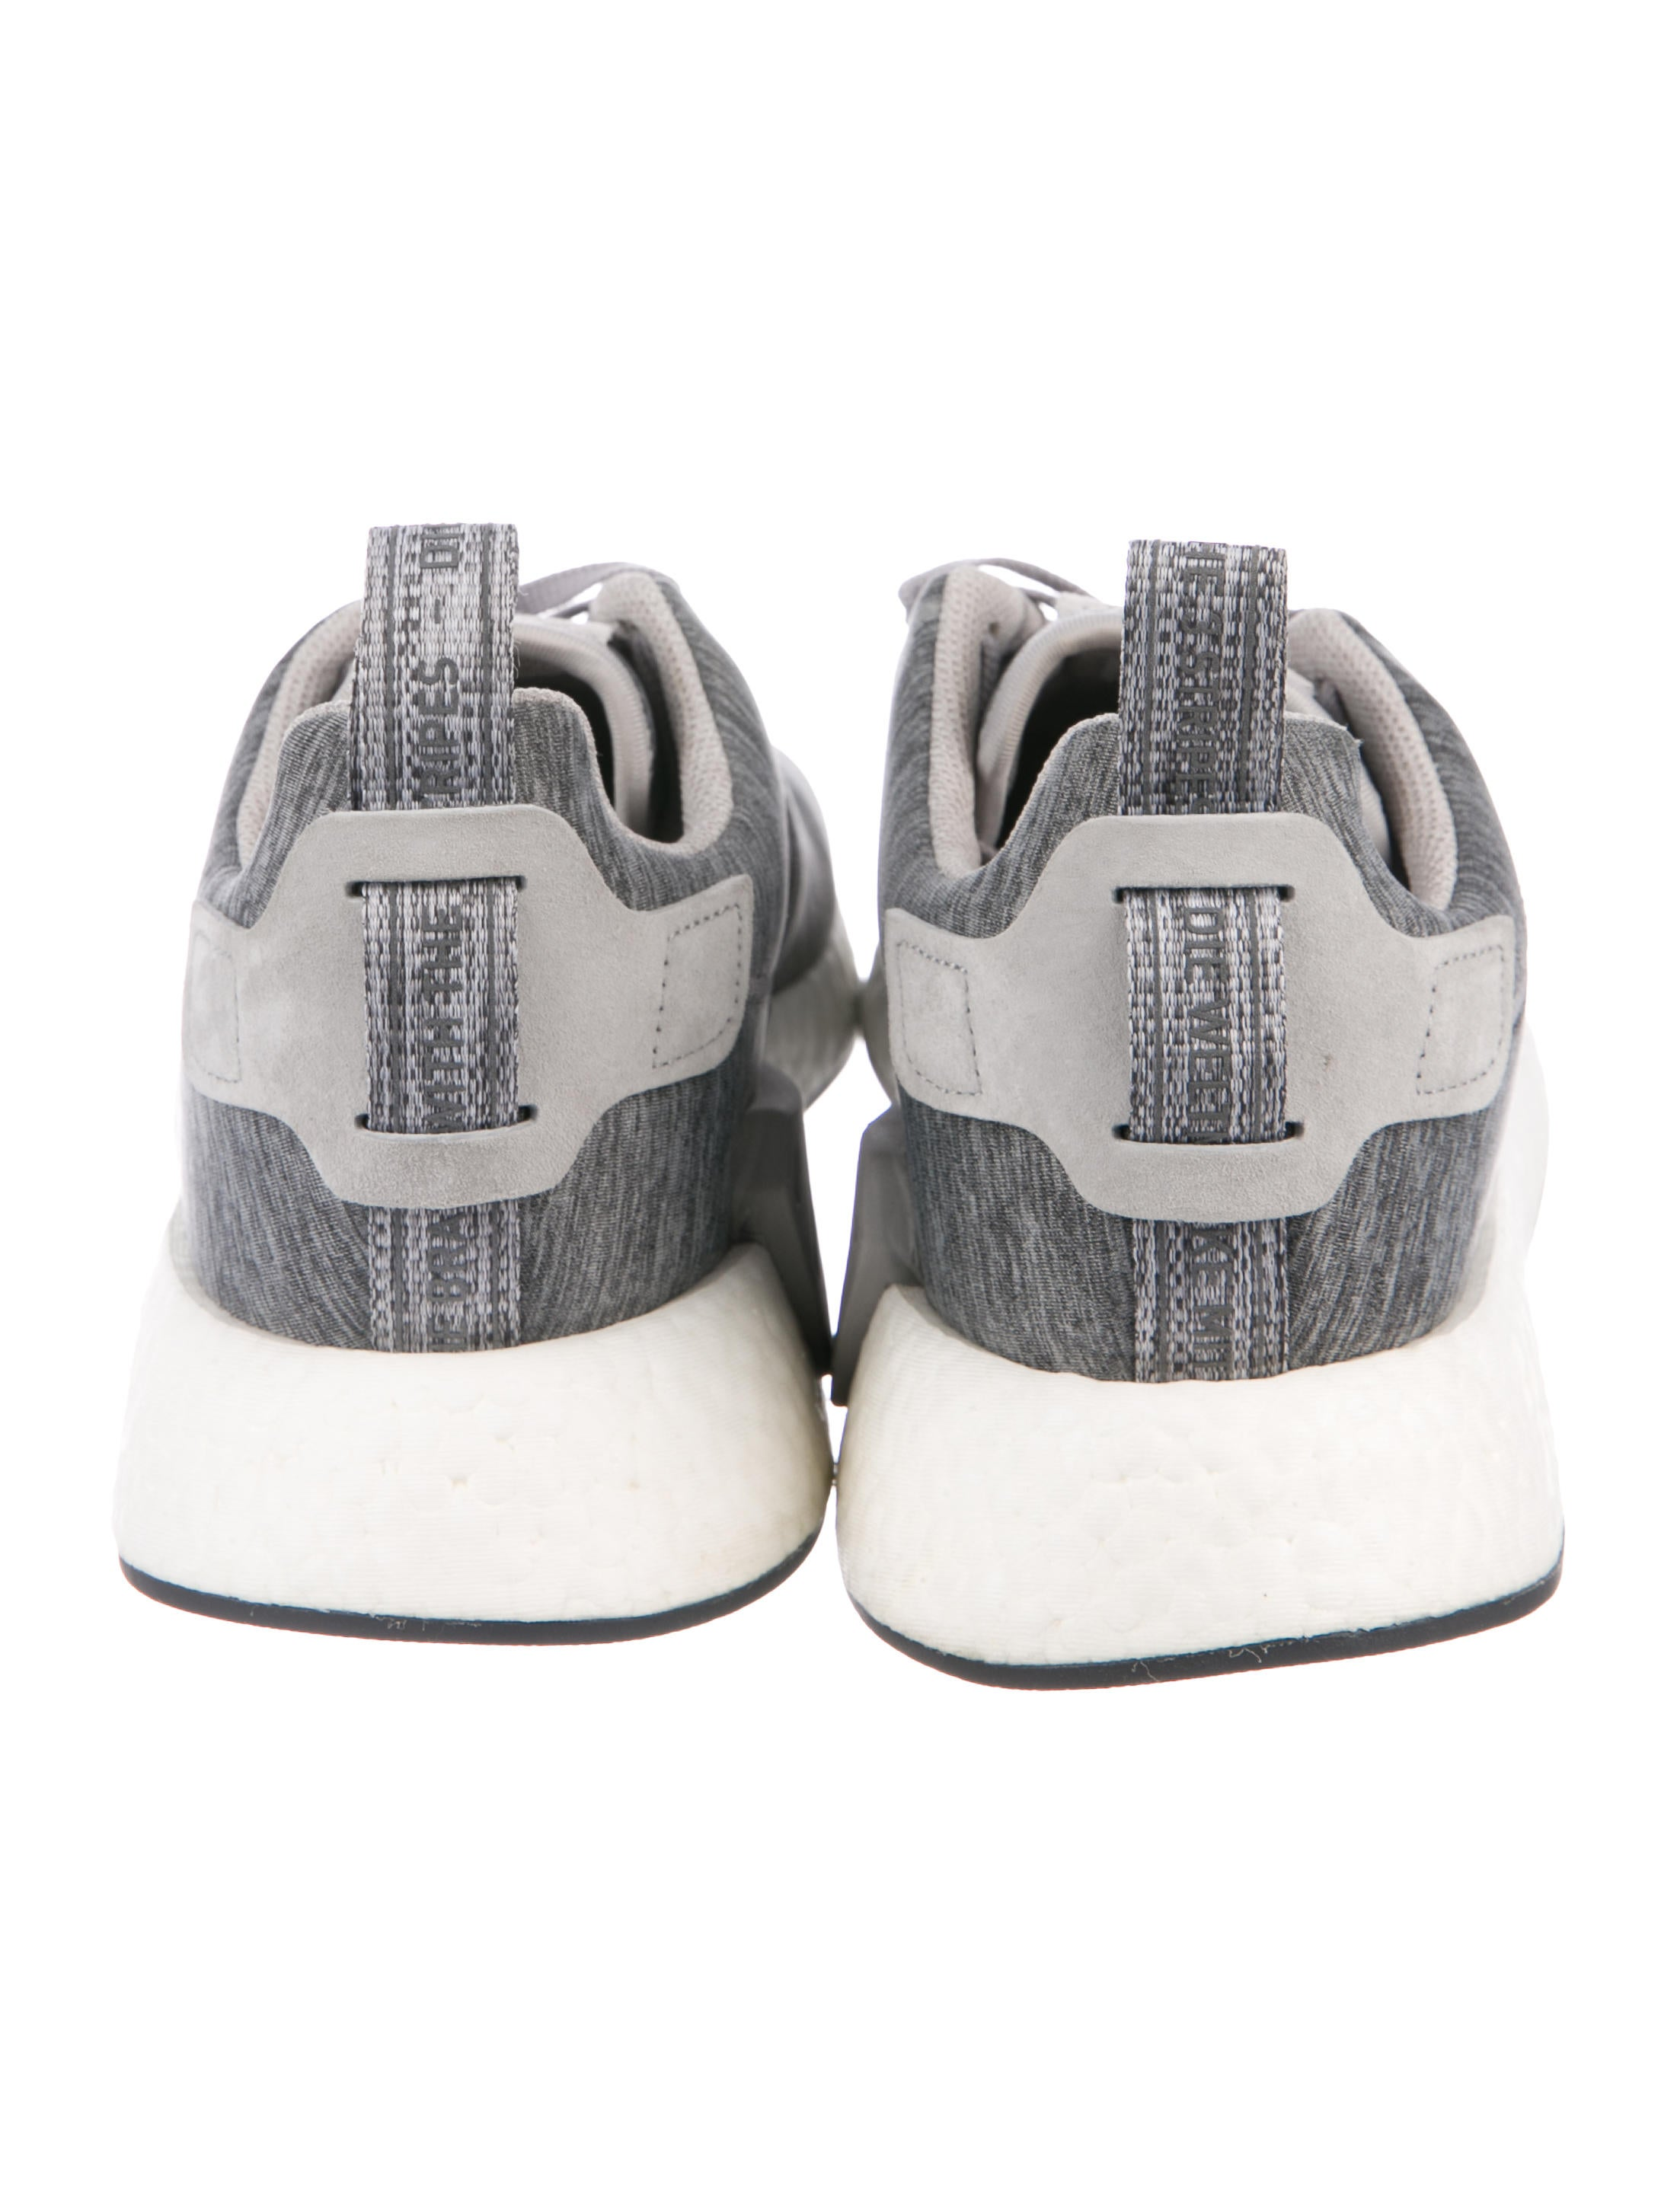 Adidas NMD R2 'Grey Mélange' Sneakers Shoes W2ADS23737